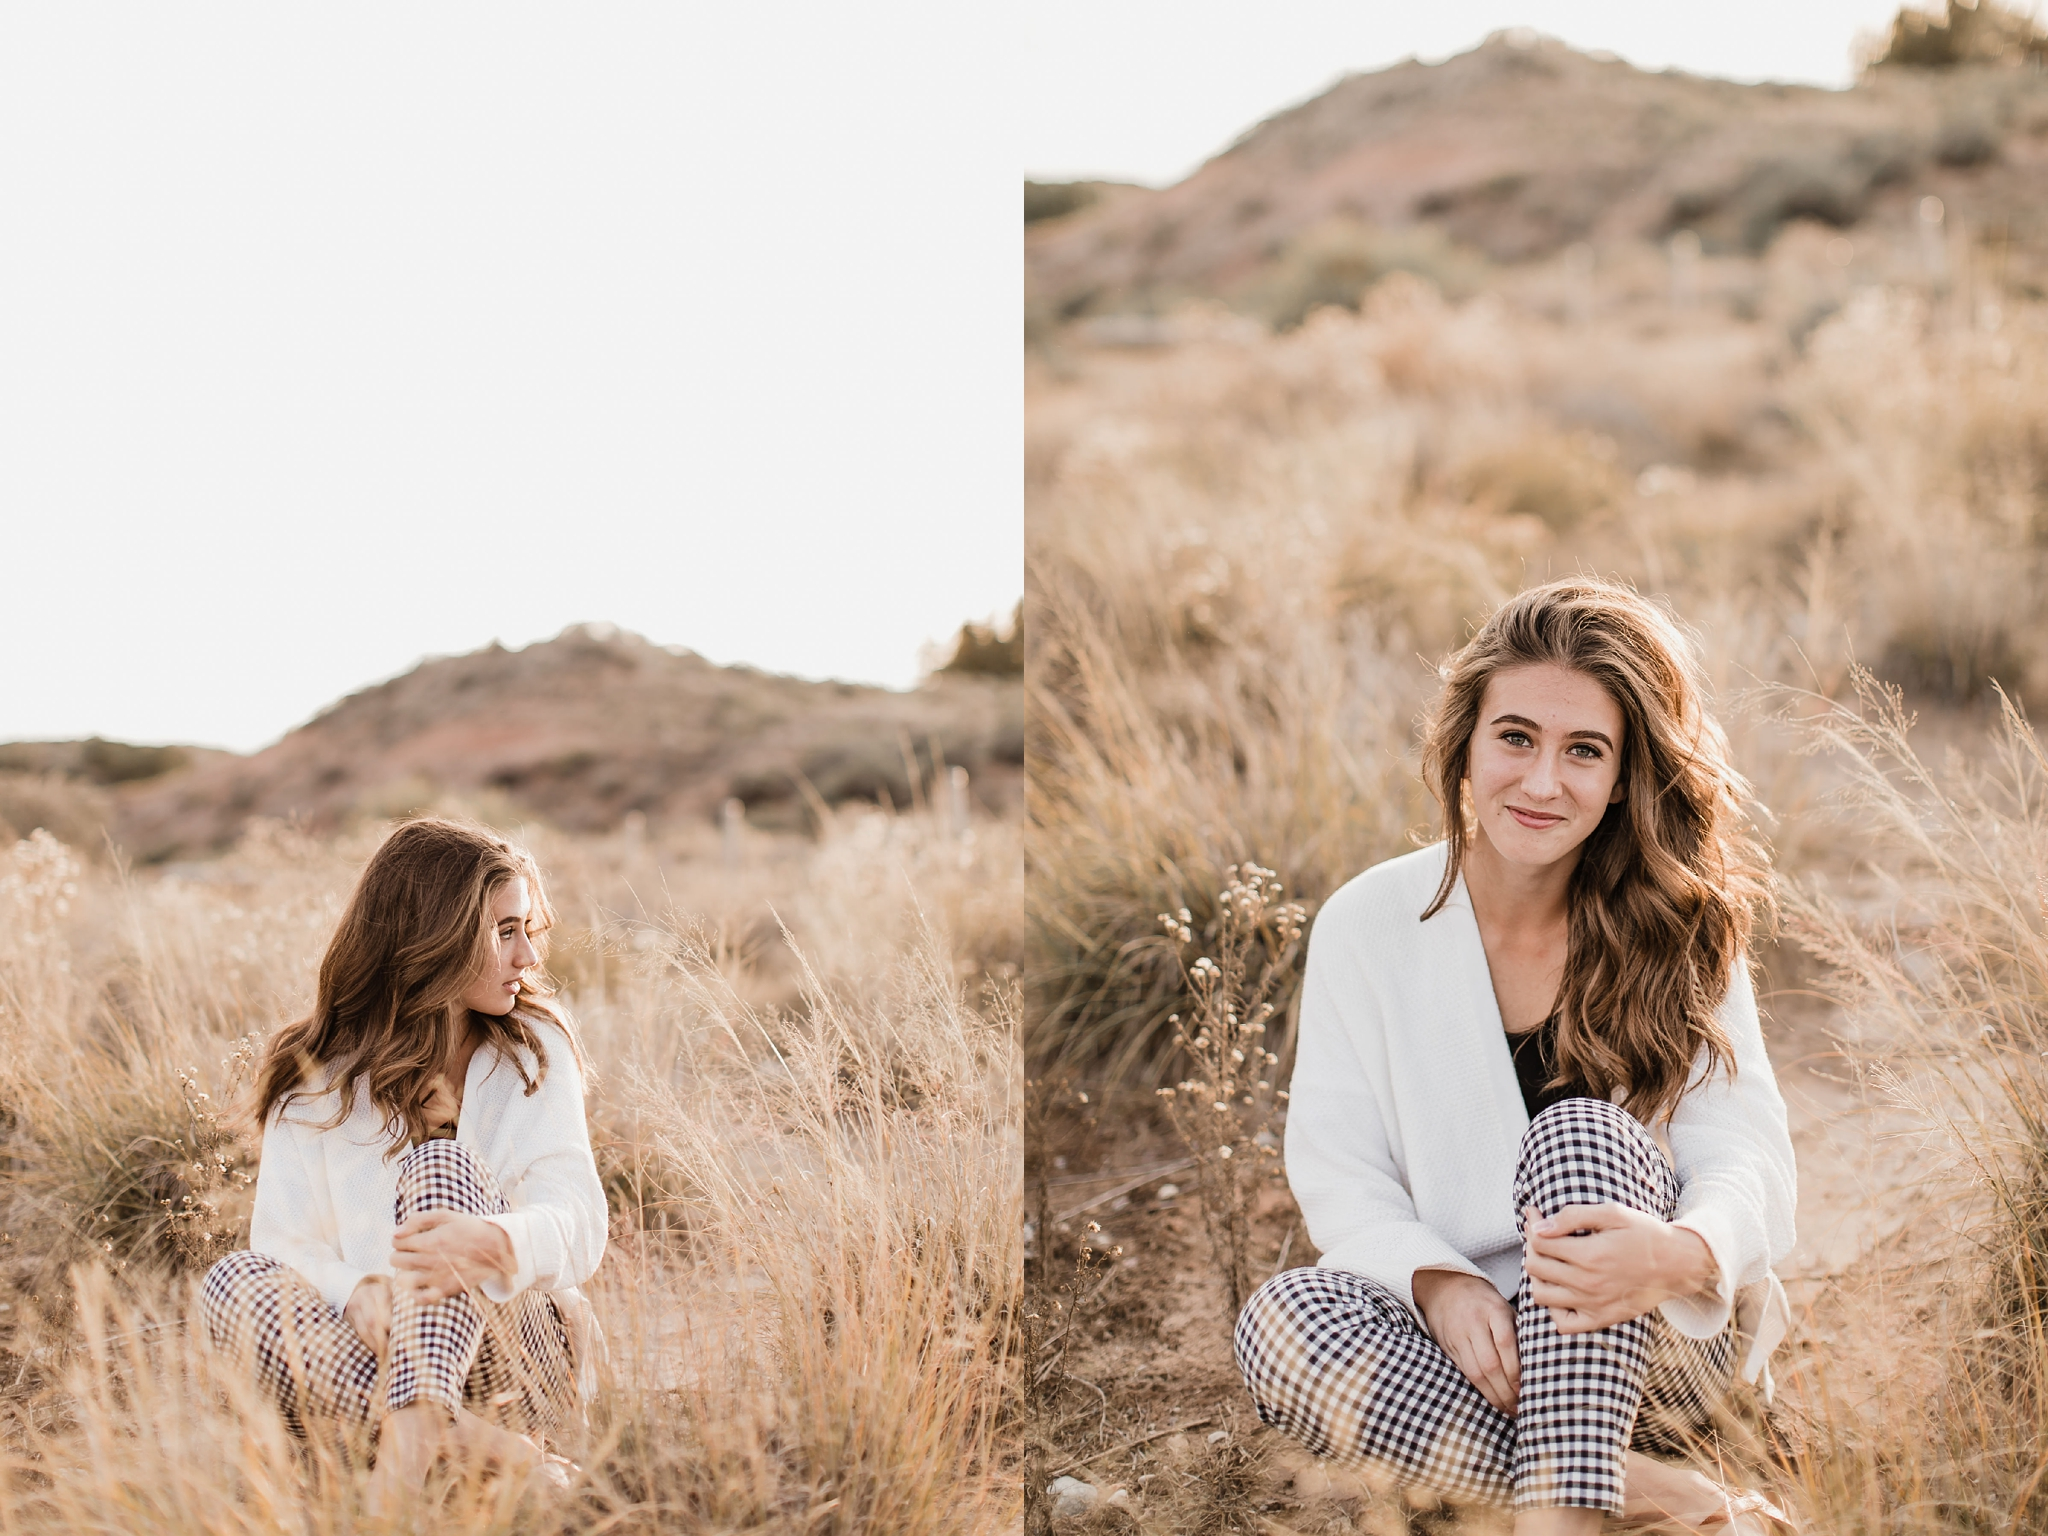 Alicia+lucia+photography+-+albuquerque+wedding+photographer+-+santa+fe+wedding+photography+-+new+mexico+wedding+photographer+-+senior+session+-+new+mexico+senior+session+southwest+senior+session_0001.jpg